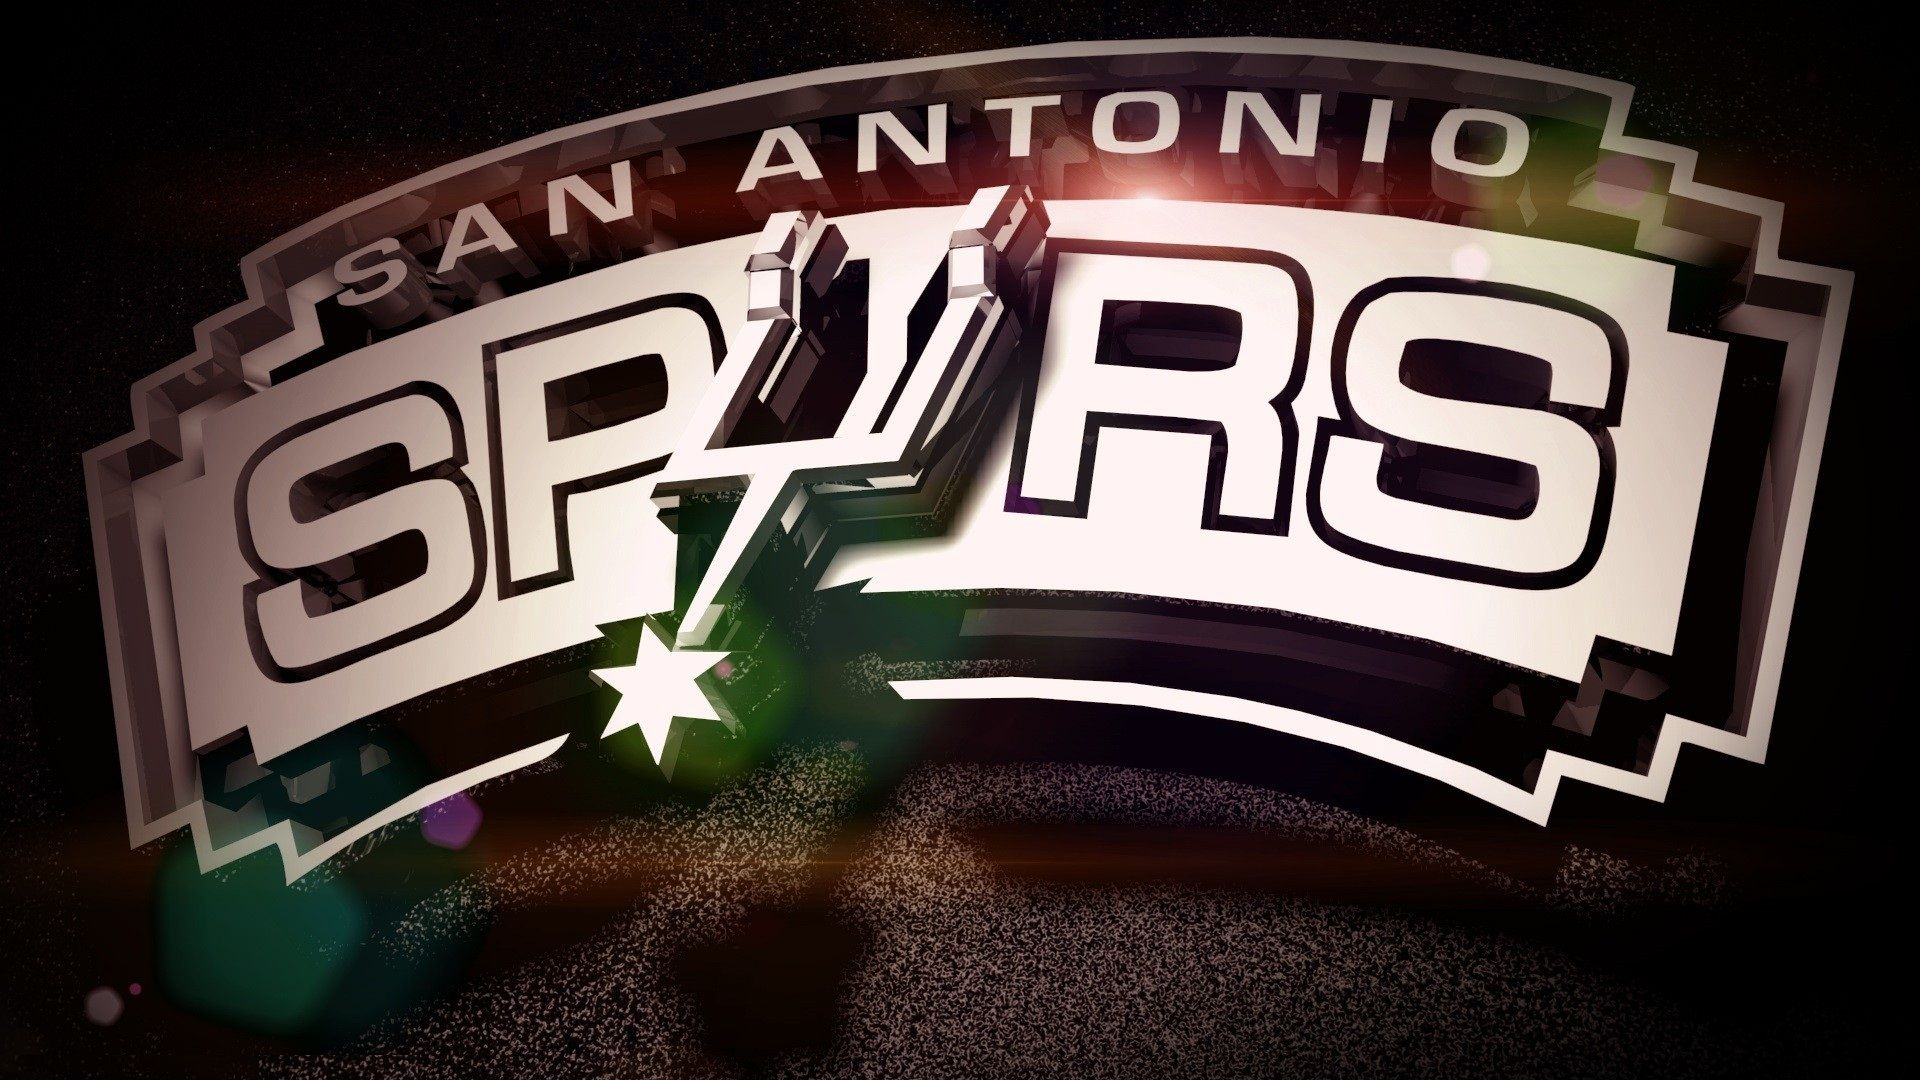 San Antonio Spurs Wallpaper Hd San Antonio Spurs San Antonio